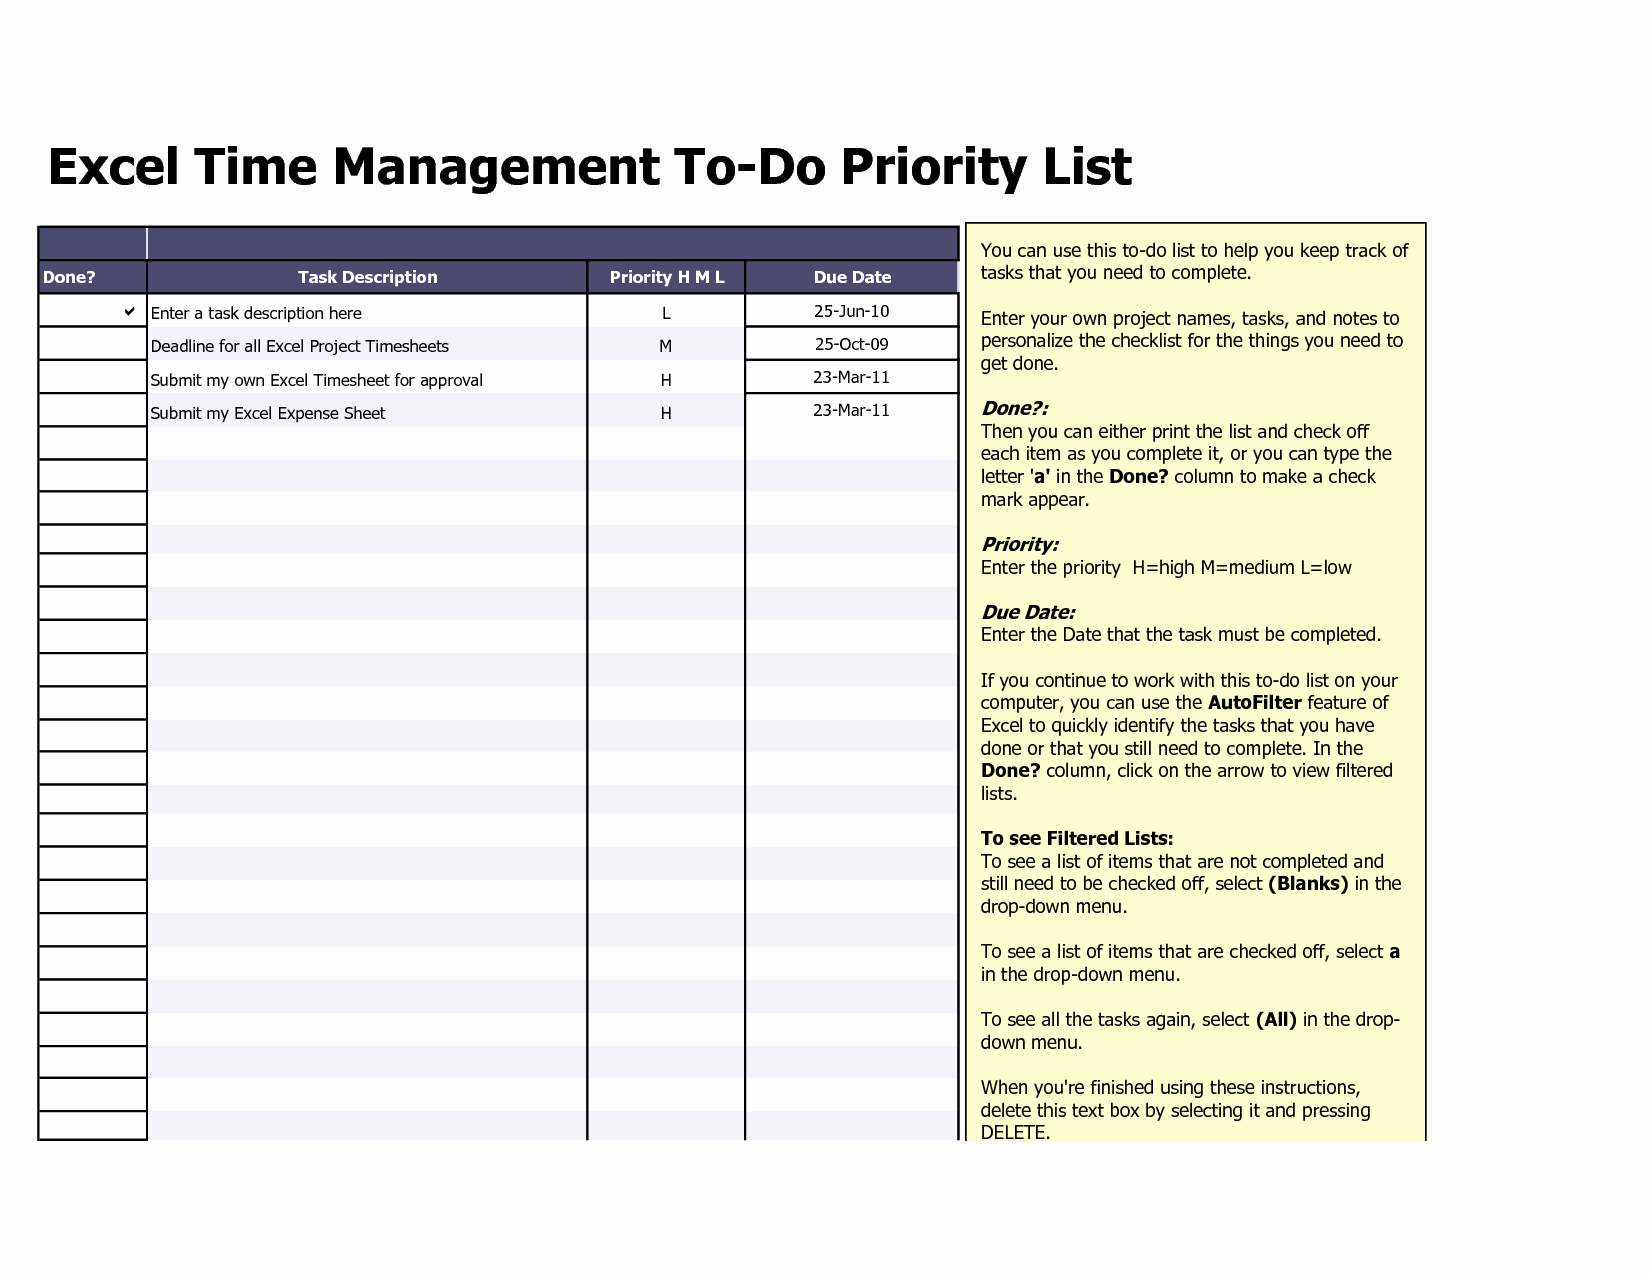 To Do List Excel Template Awesome to Do List Excel Template